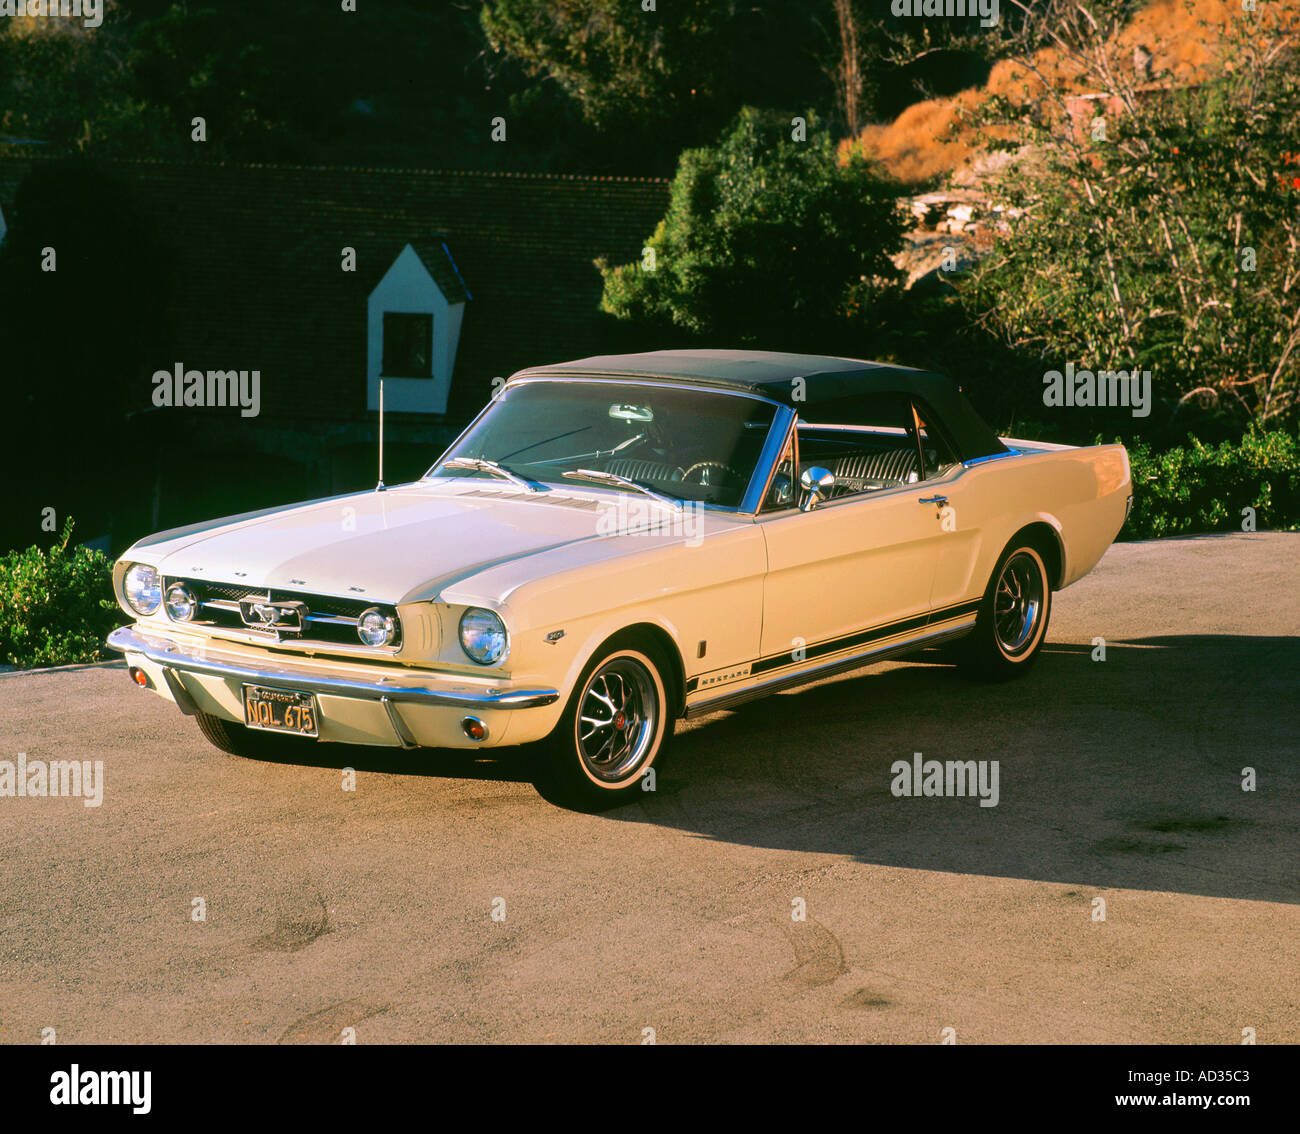 1965 Ford Mustang - Stock Image